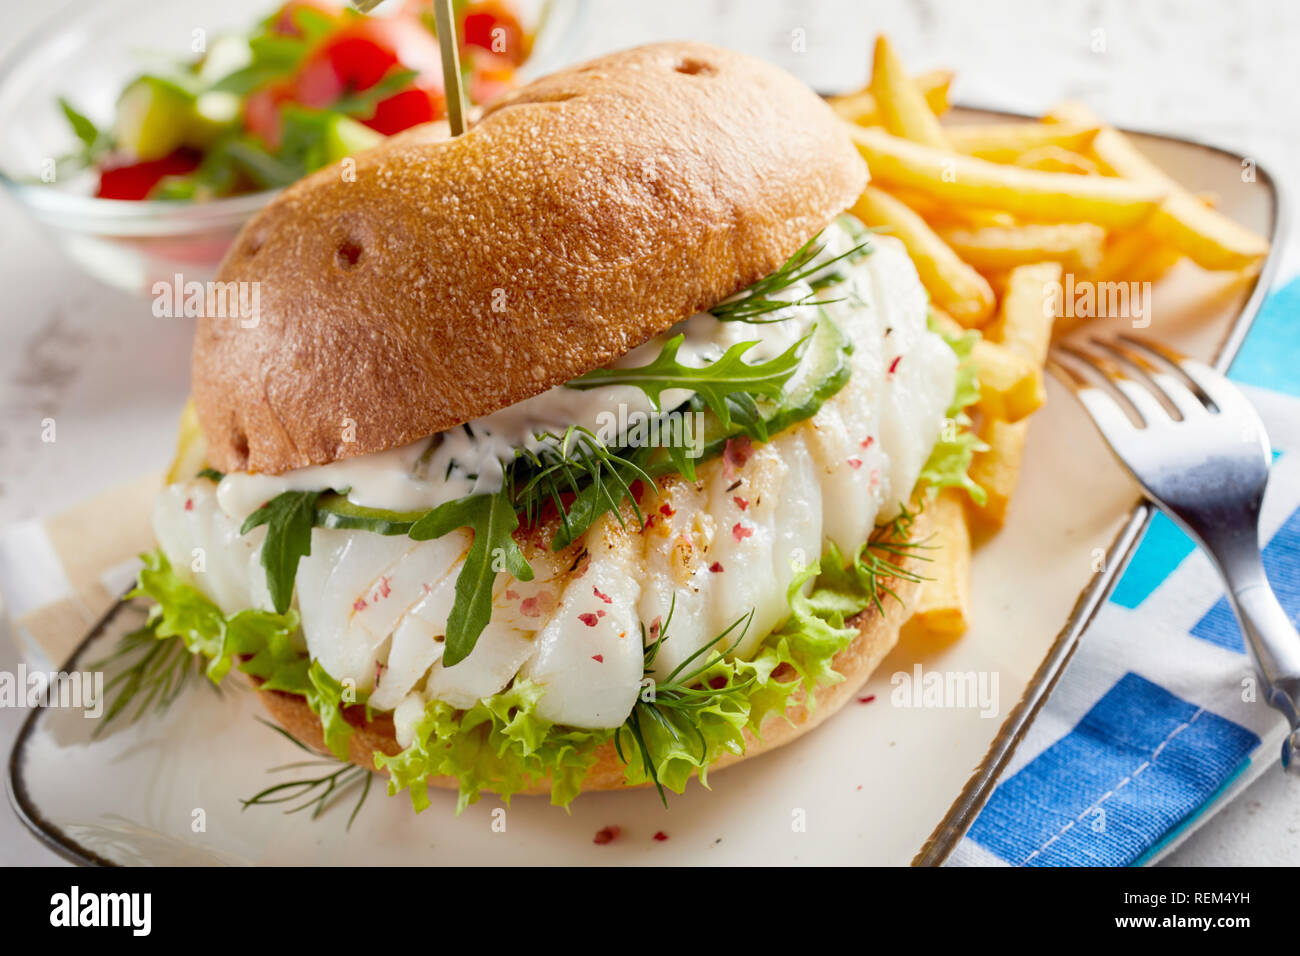 Gourmet fish seafood burger with mayo and fresh salad greens and herbs on a crusty bun with side serving of potato chips - Stock Image